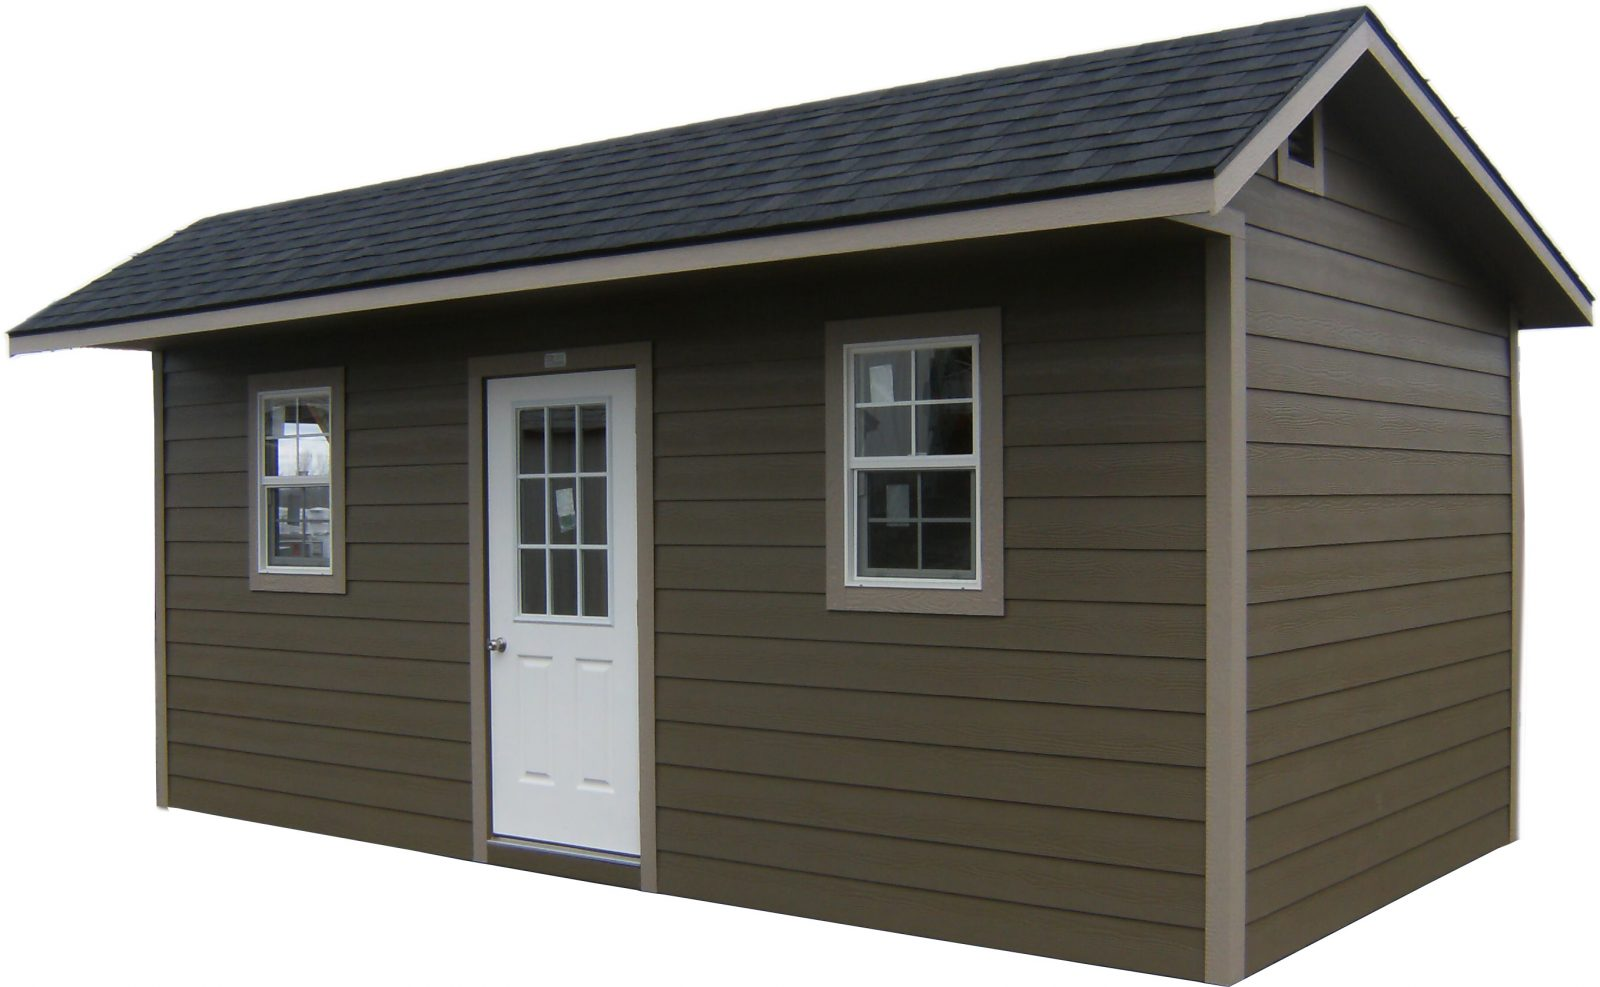 Am Planning On Wiring My New Shed Soon But Need To Check I Am Doing